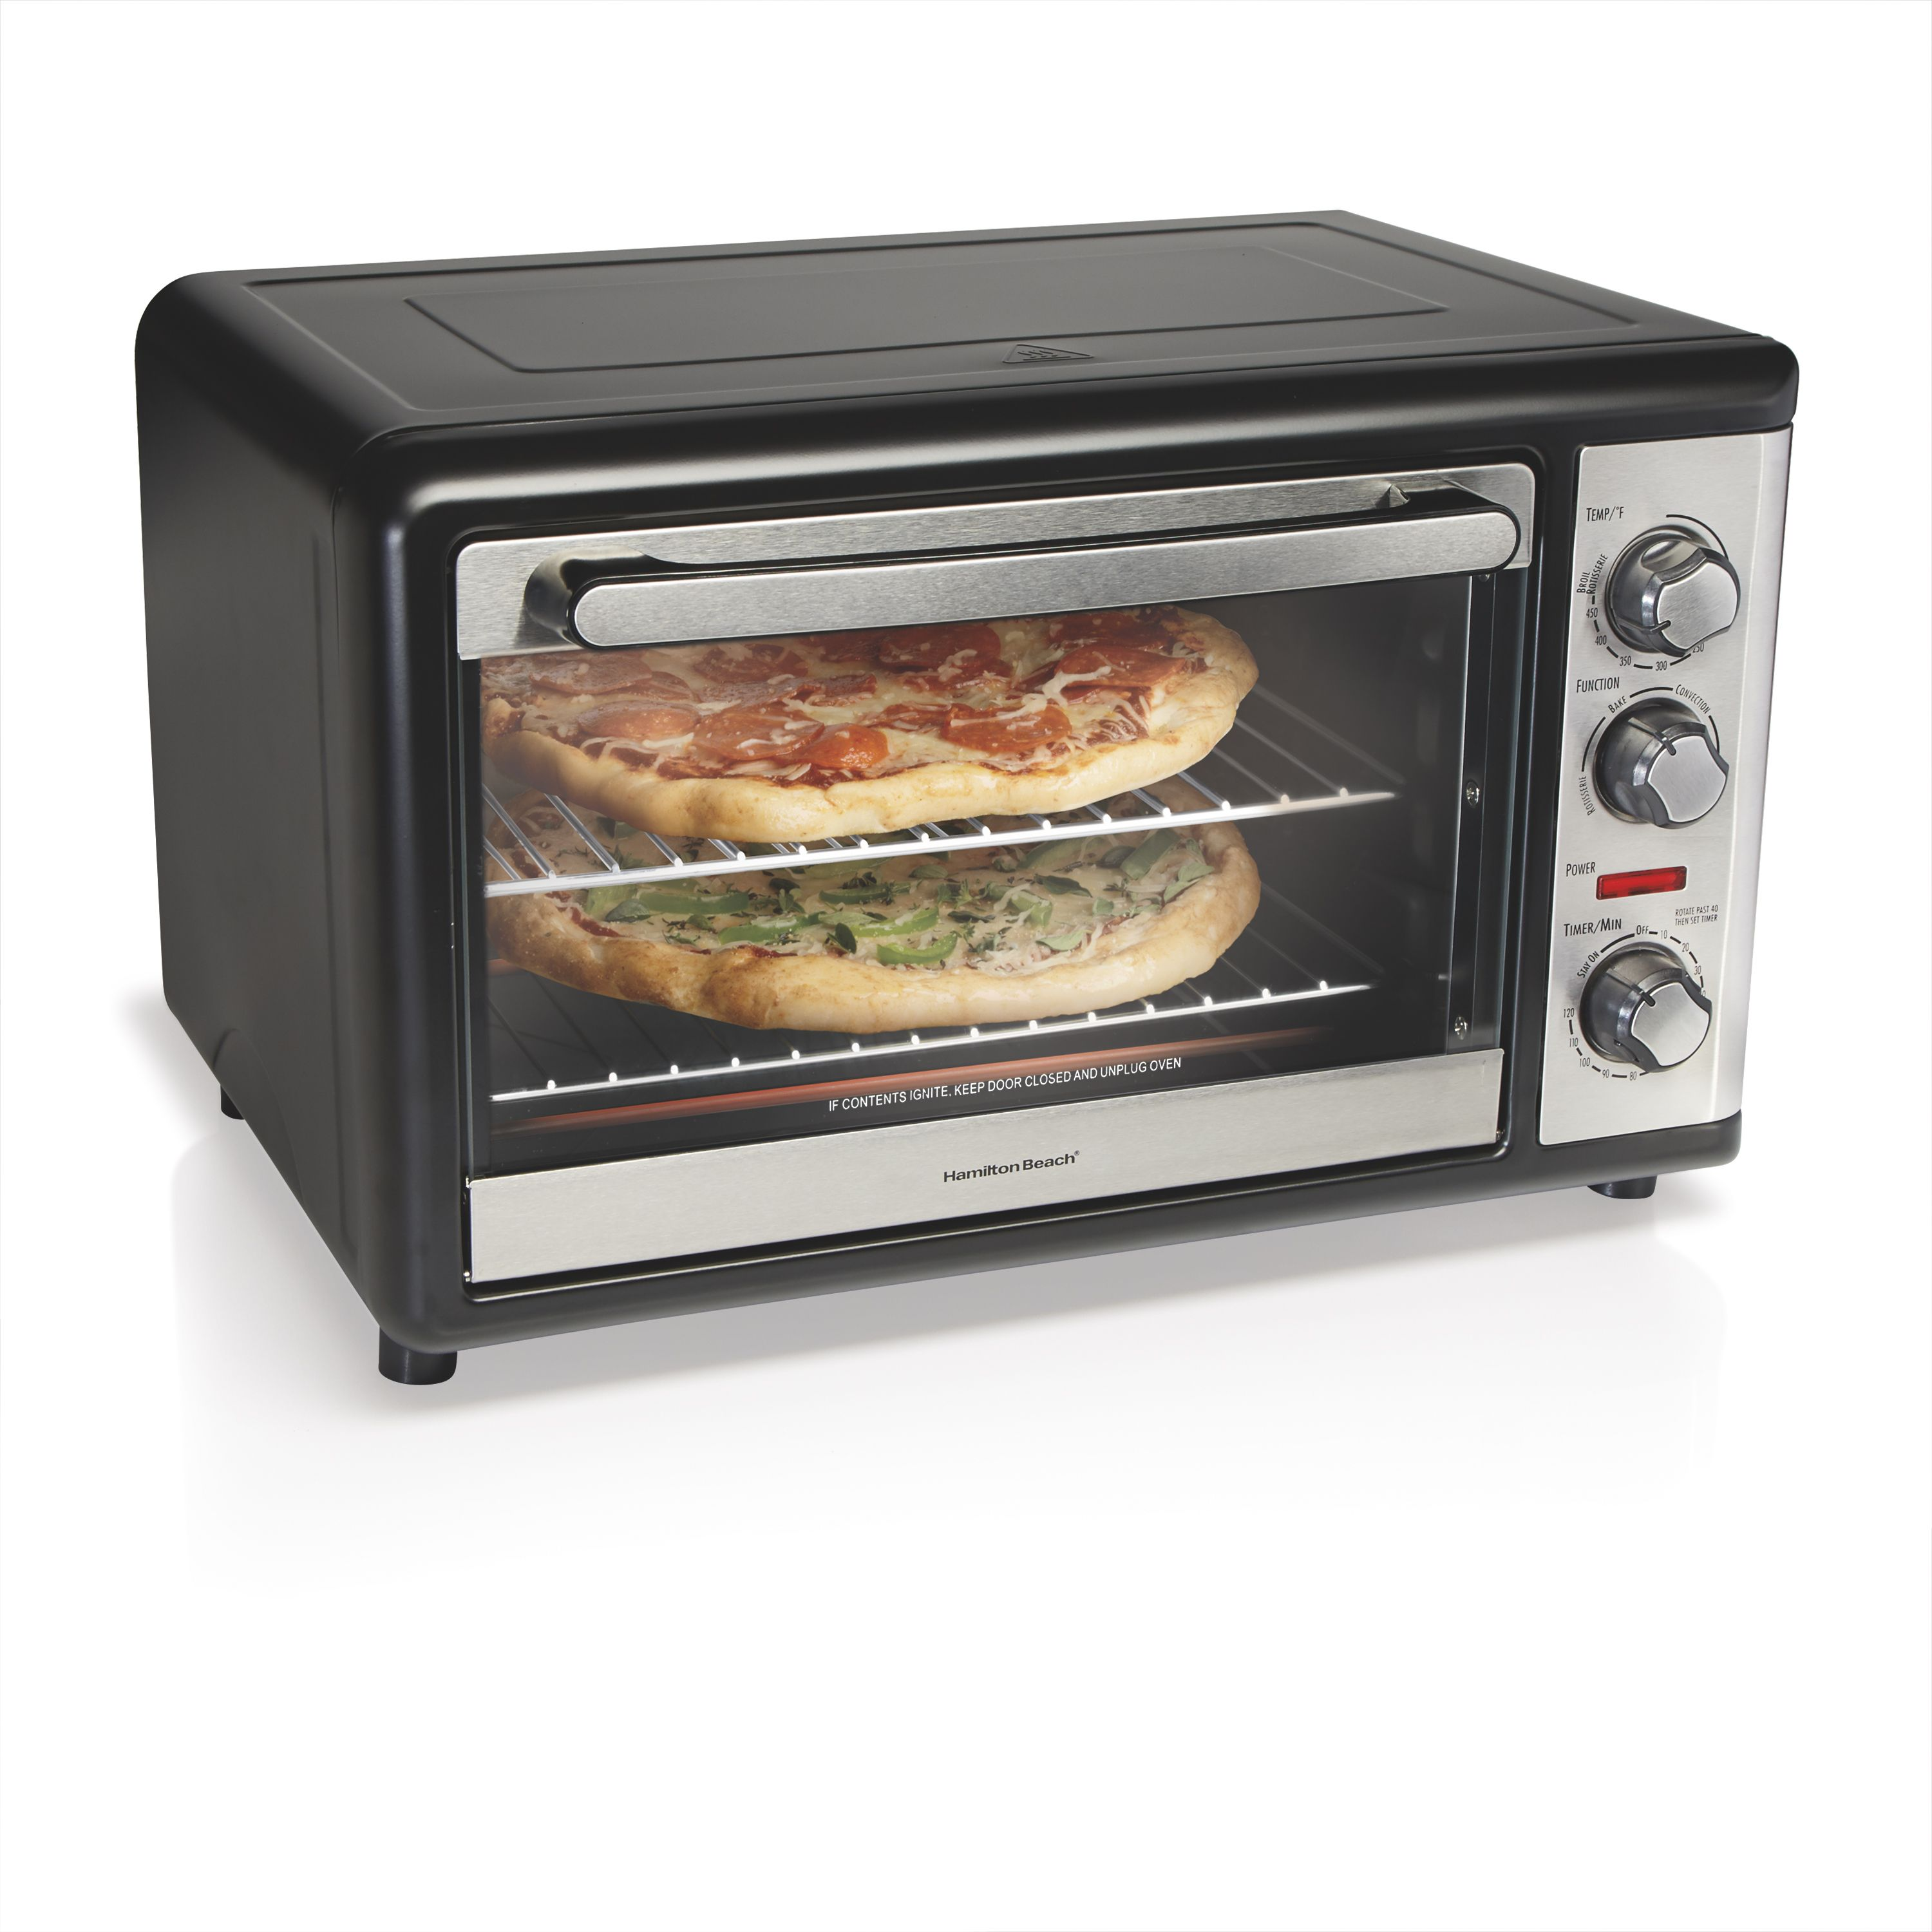 Free Shipping Buy Hamilton Beach Xl Convection Oven With Rotisserie At Walmart Com Countertop Convection Oven Convection Oven Toaster Oven